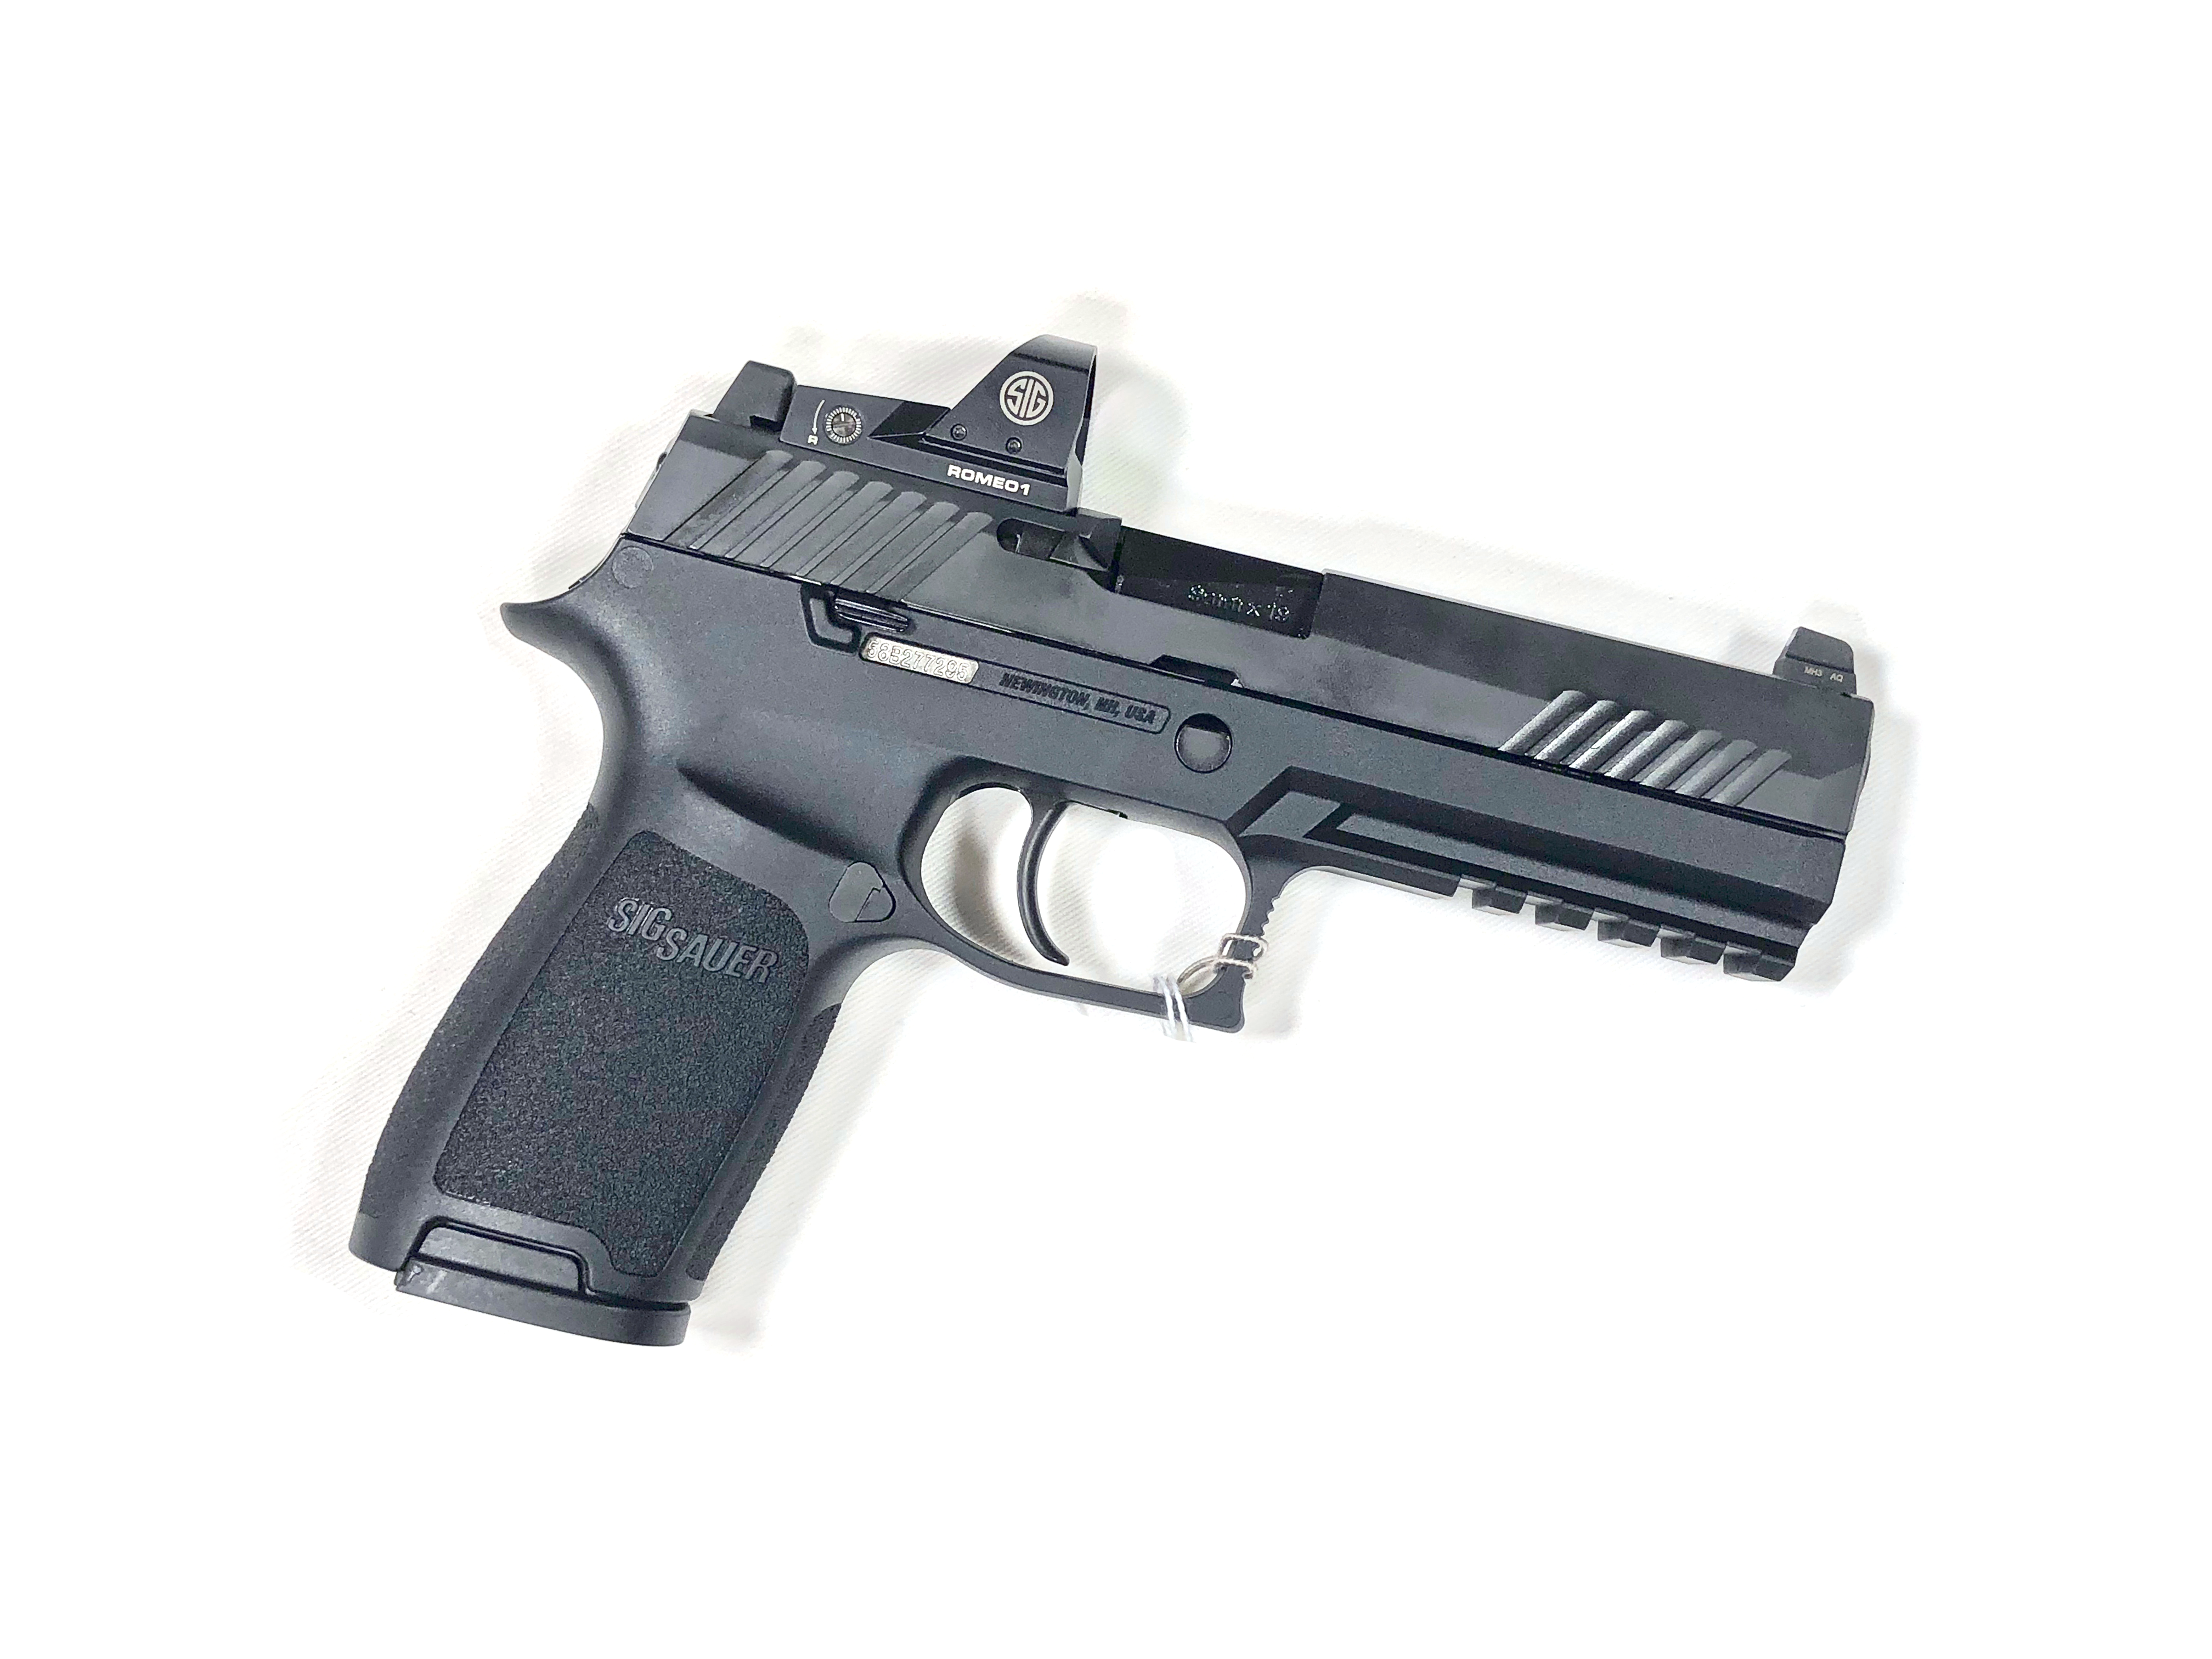 Sig Sauer P320 RX Full-Size